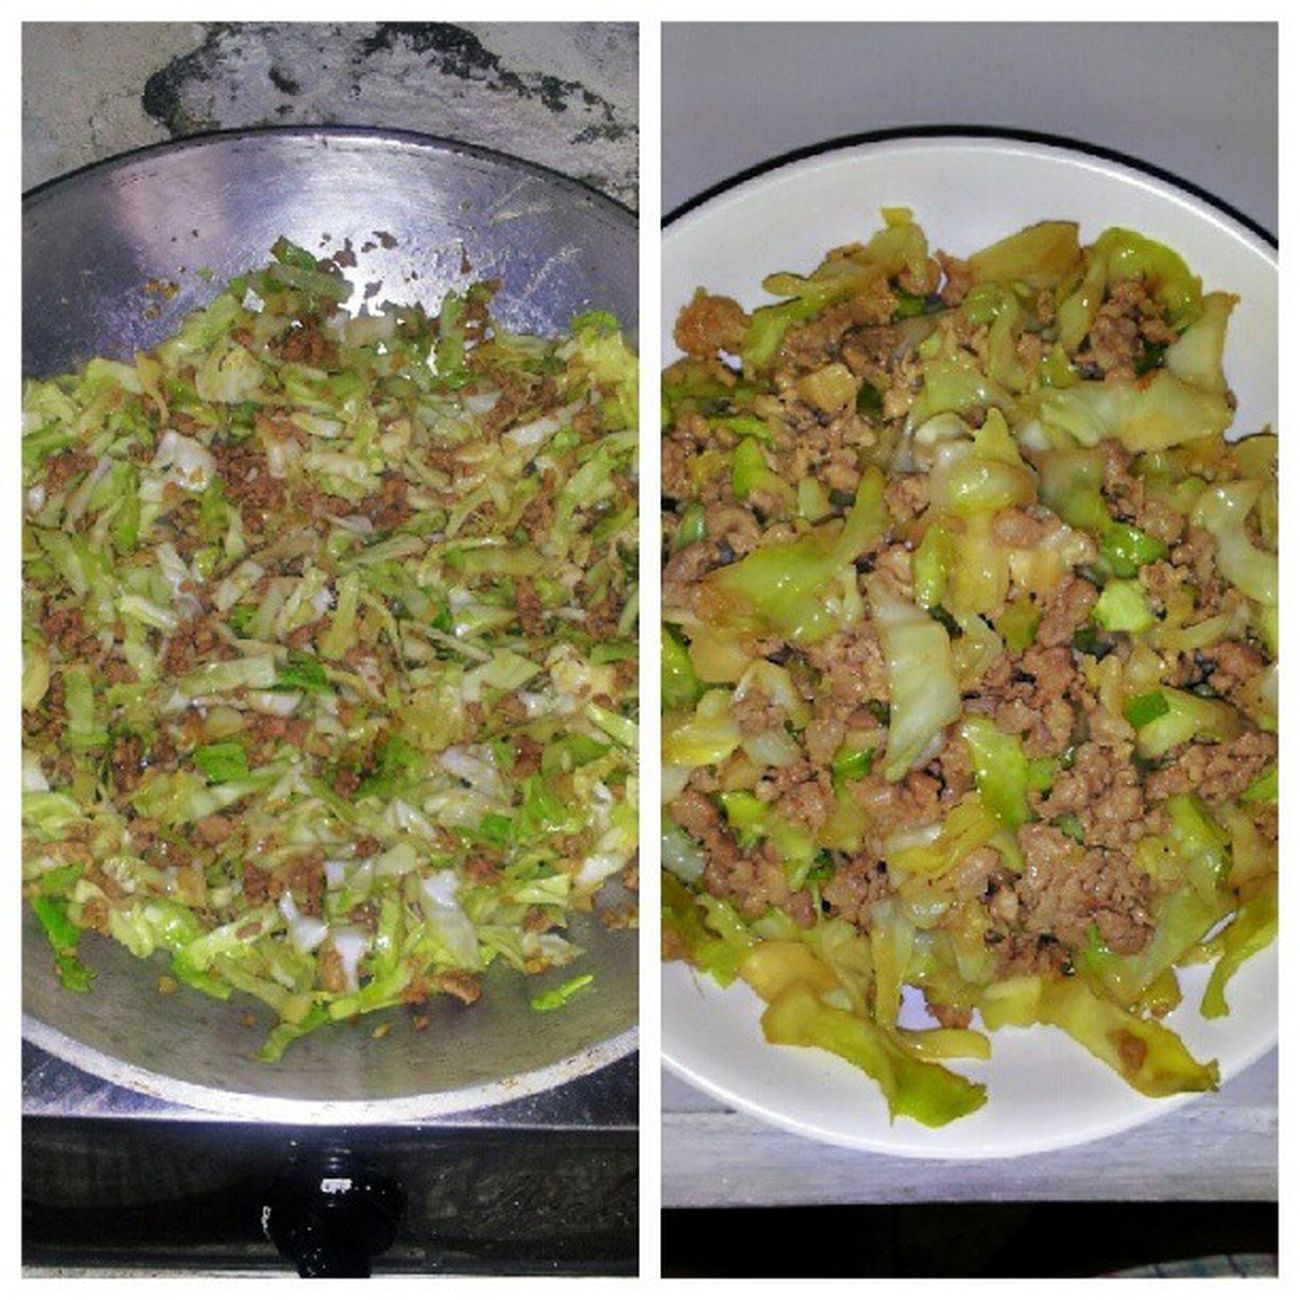 What I cooked for lunch yesterday, Pork and Cabbage Stir Fry. Latepost Foodcreativity Foodie Foodgasm foodstagram foodography fooddiary ilovefood ilovetoeat ilovetocook healthyfood goodeats nomnomnom yumyumyum delicioso